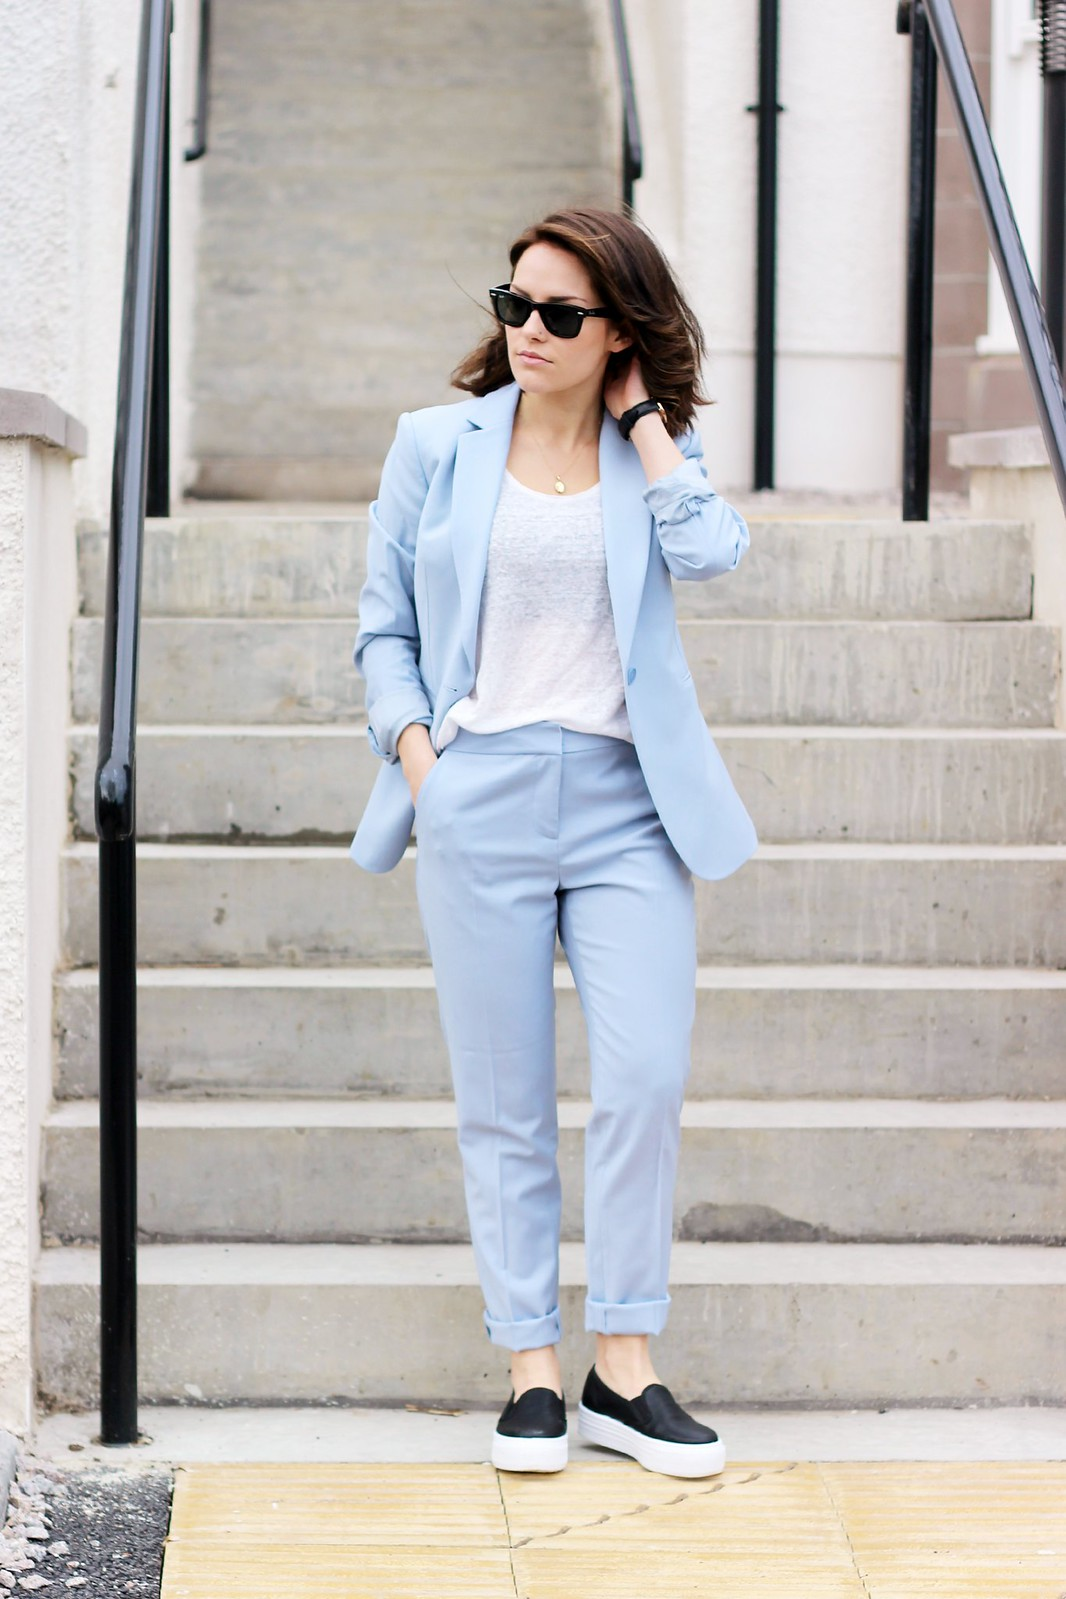 reiss powder blue suit